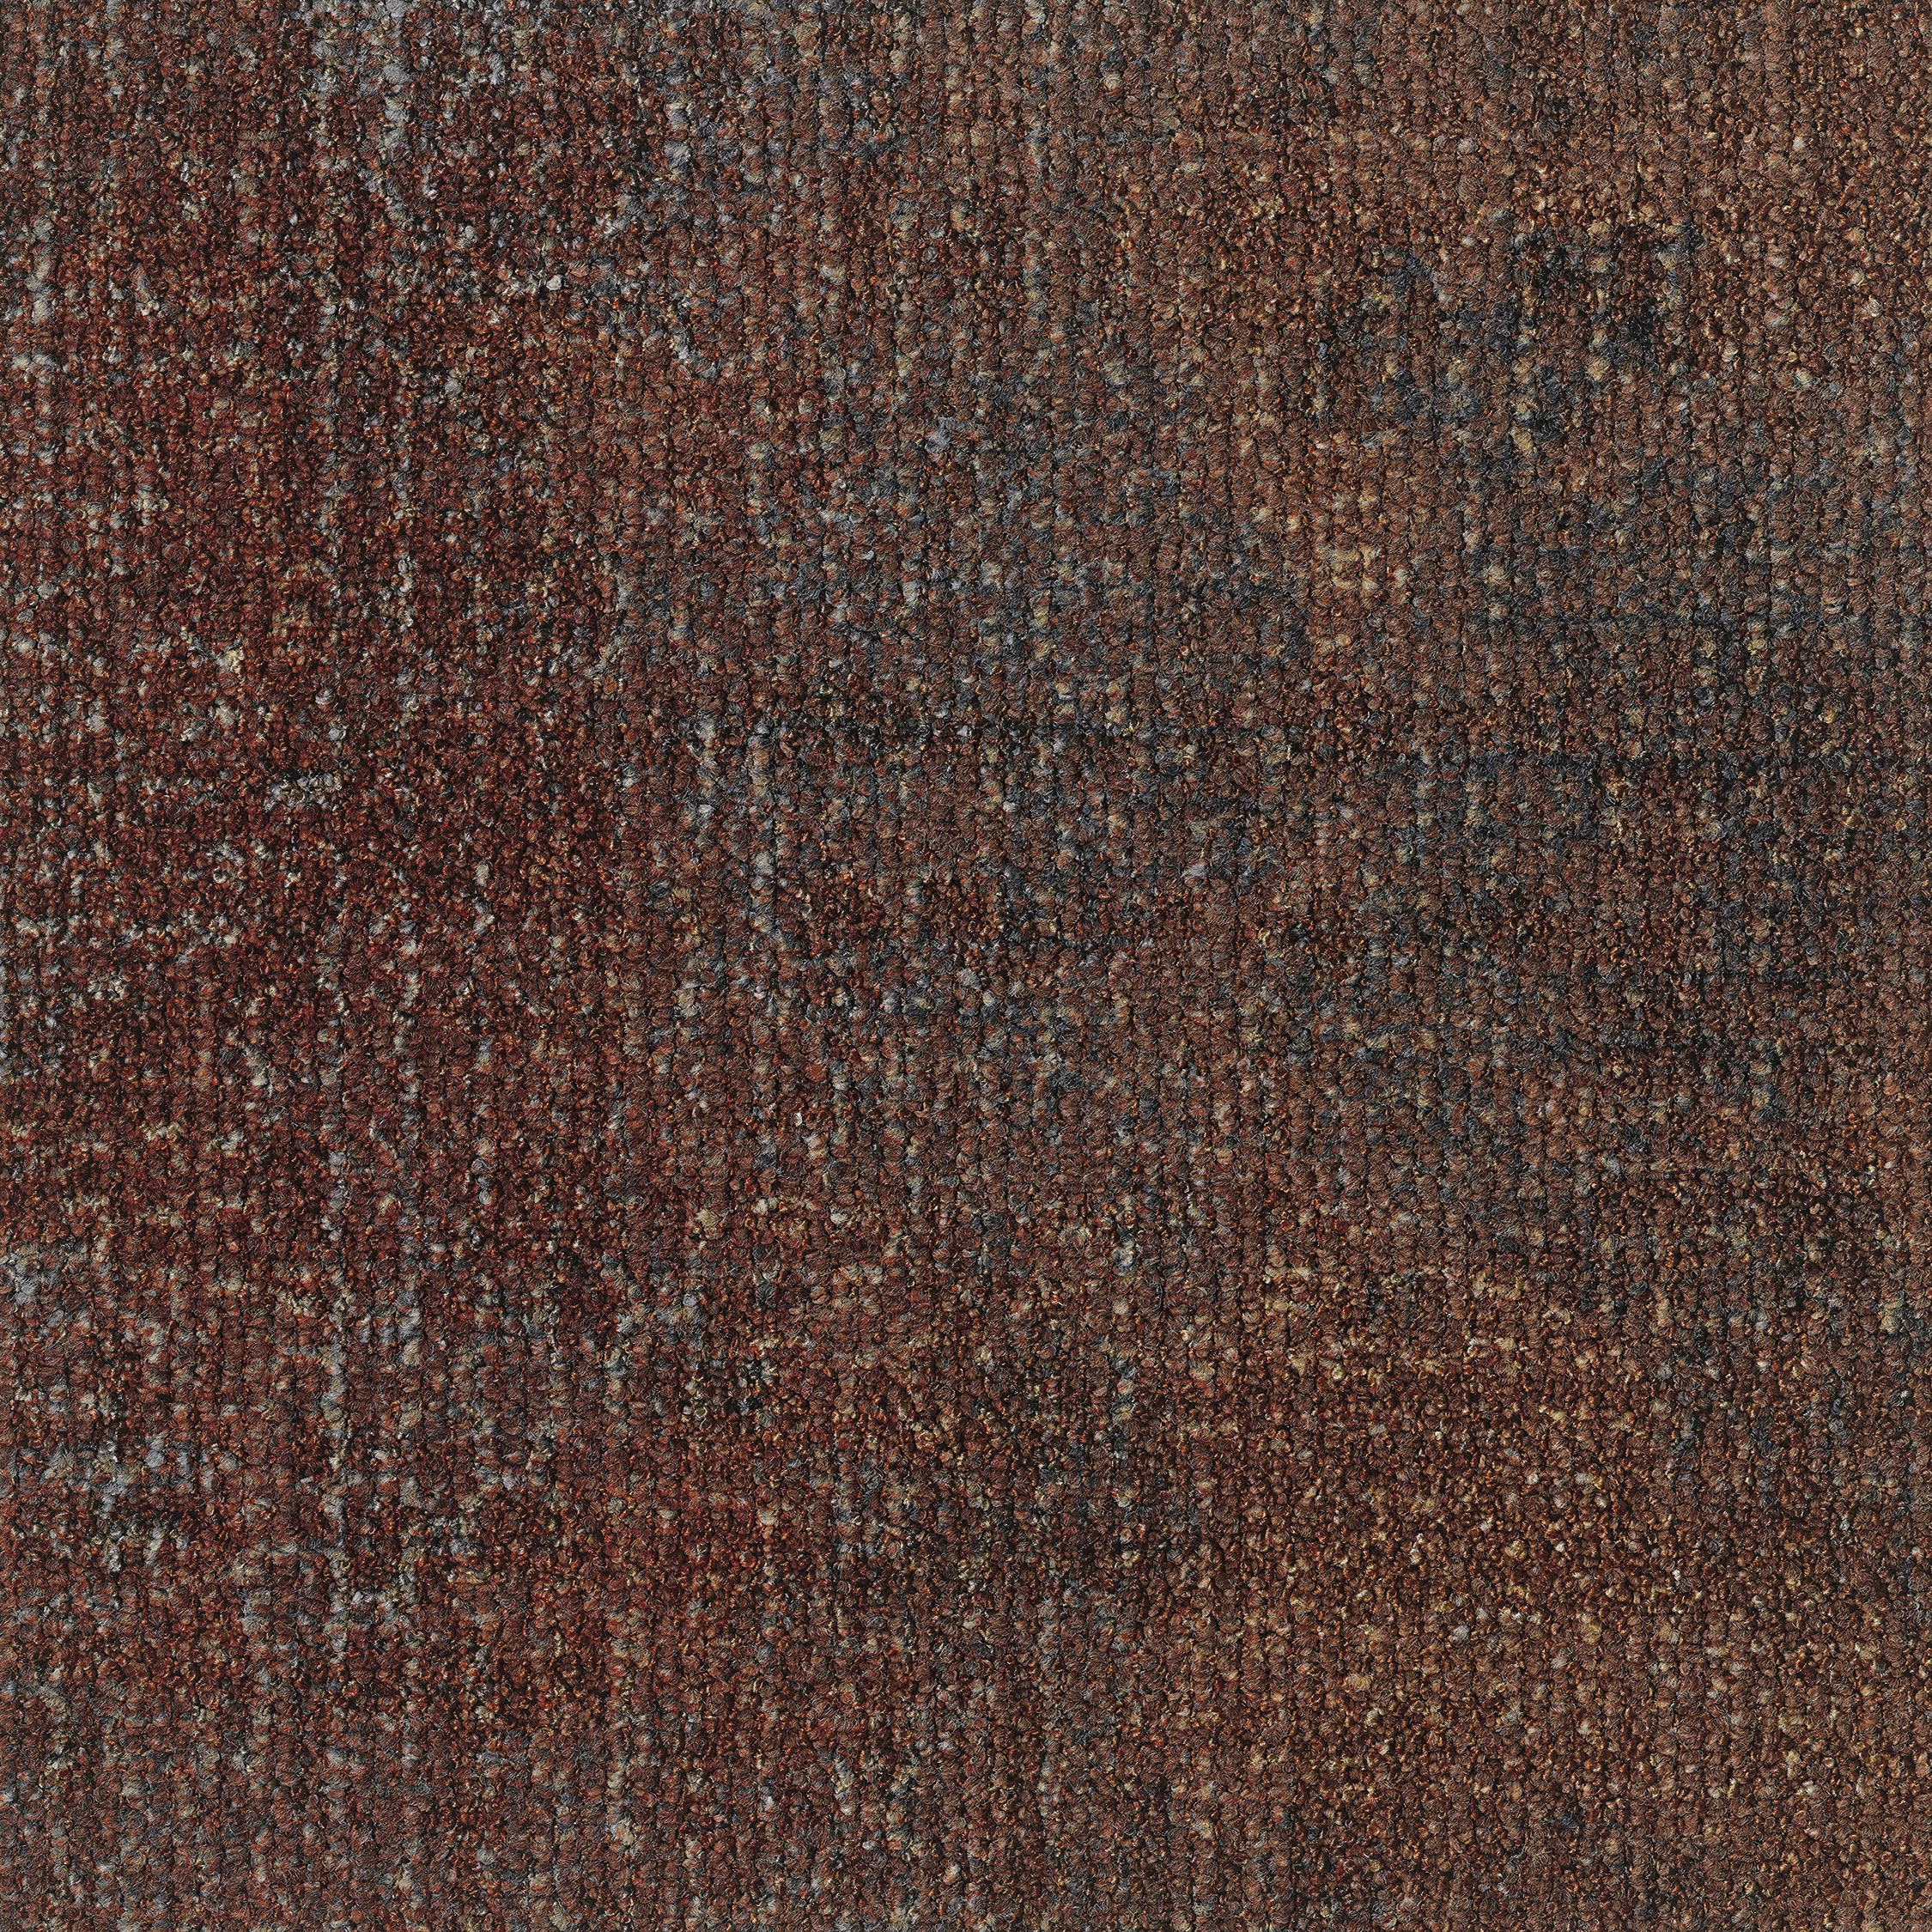 ReForm Transition Mix Leaf warm brown/copper 5595